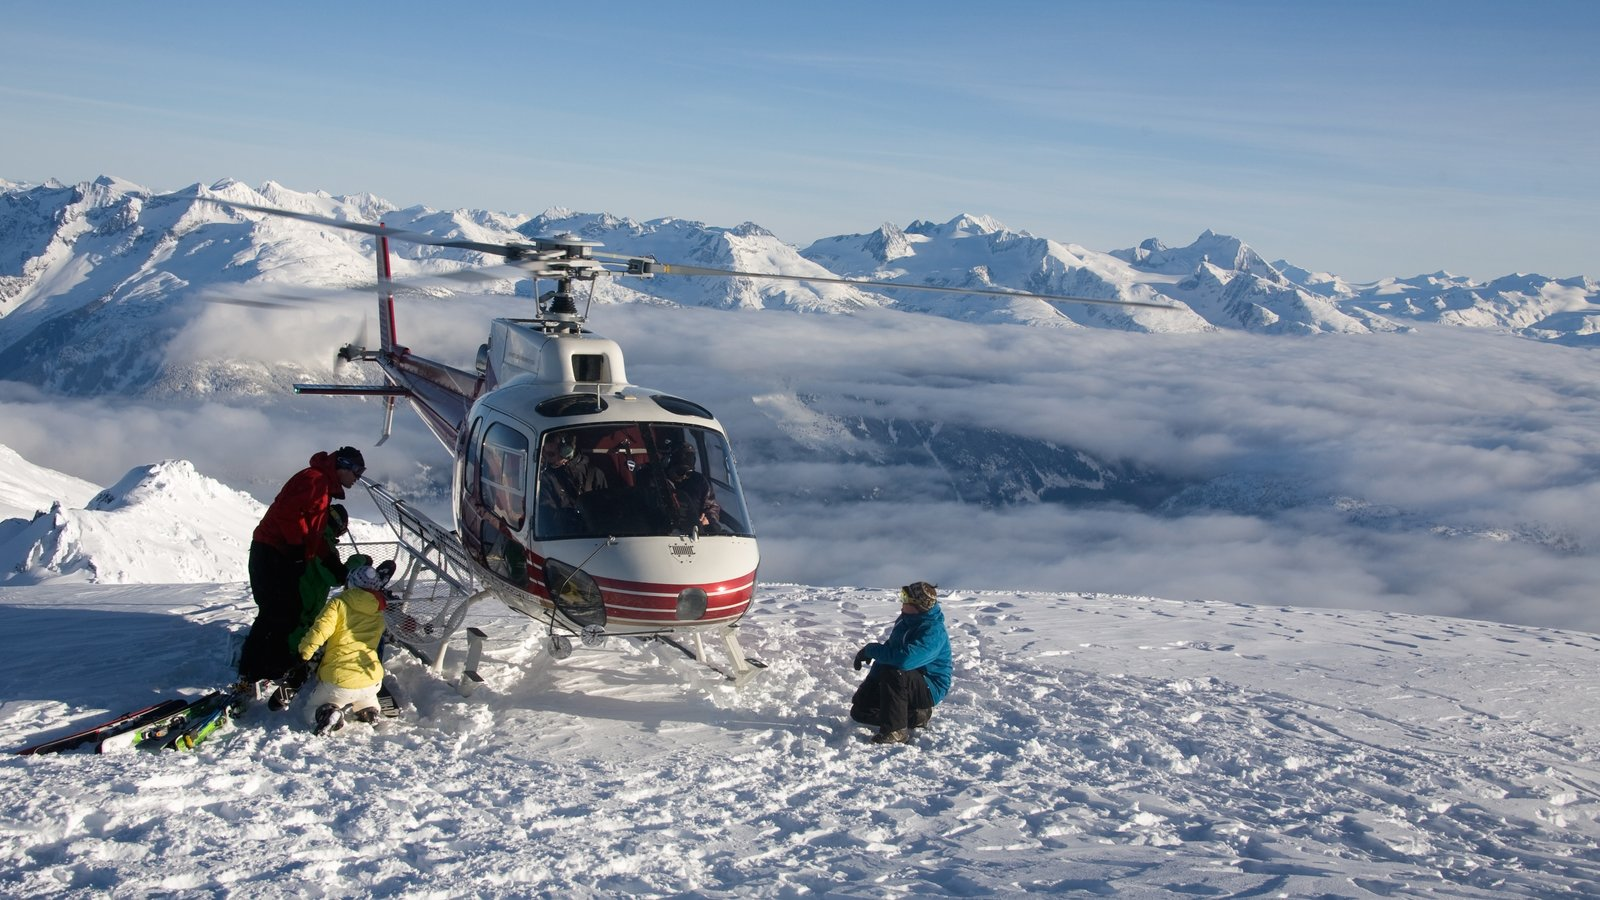 Whistler Ski Area featuring a sporting event, landscape views and mountains